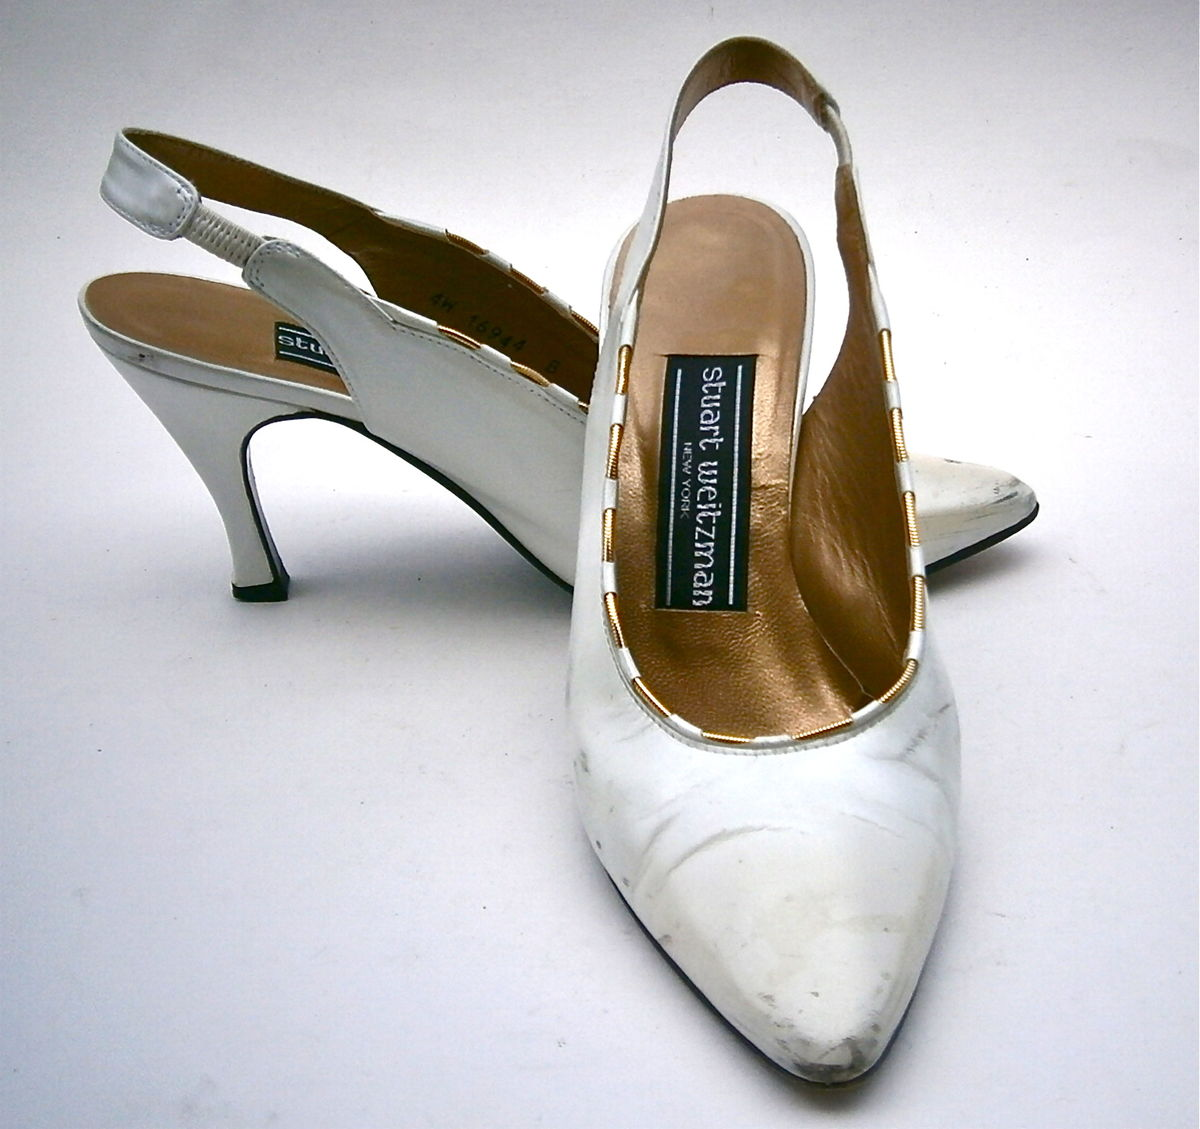 27ff49cf957 ... Vintage White Satin Ladies Shoes All Leather Flared High Heels Stuart  Weitzman Slingbacks Gold Trim Pumps ...